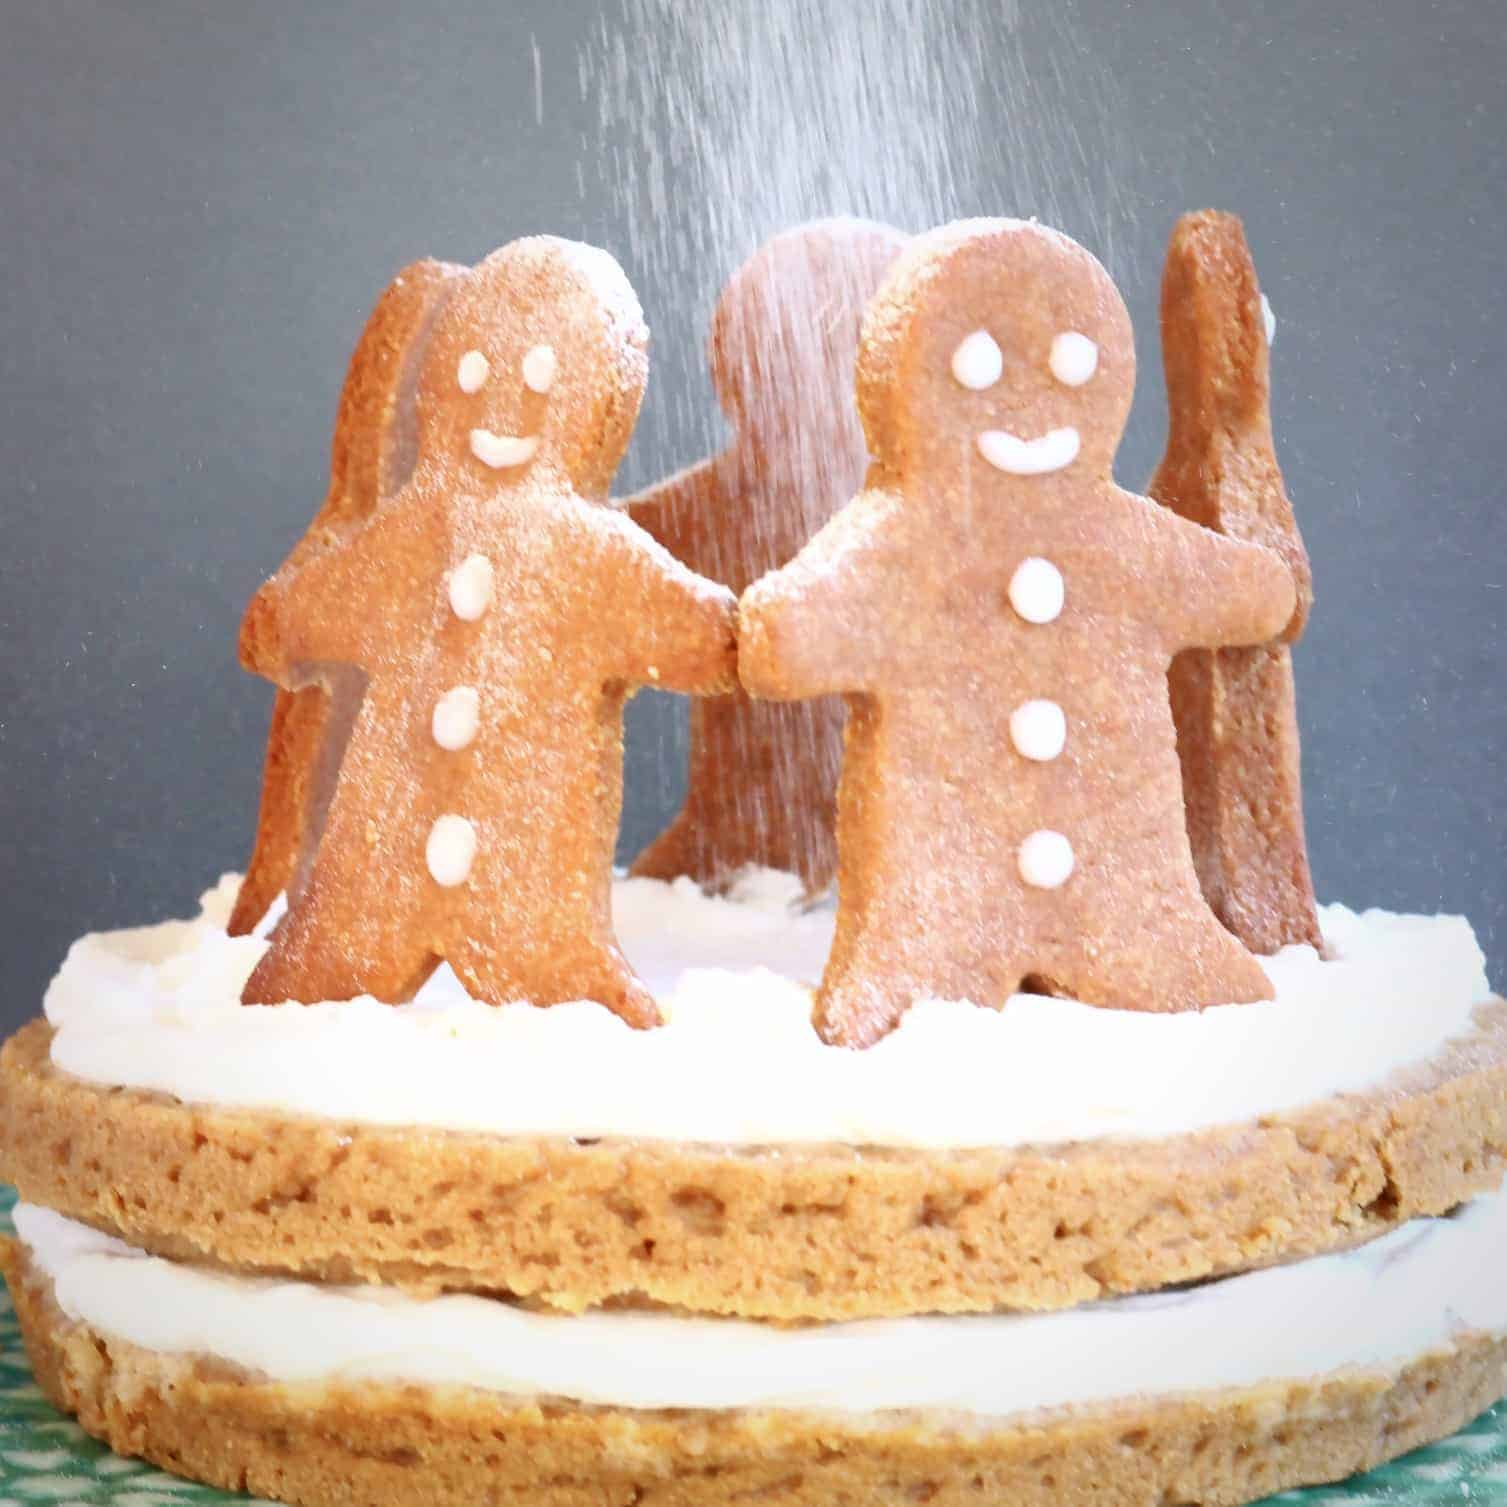 Photo of gingerbread sponge cake sandwiched with white cream topped with five gingerbread men cookies standing in a circle with a dusting of white icing sugar